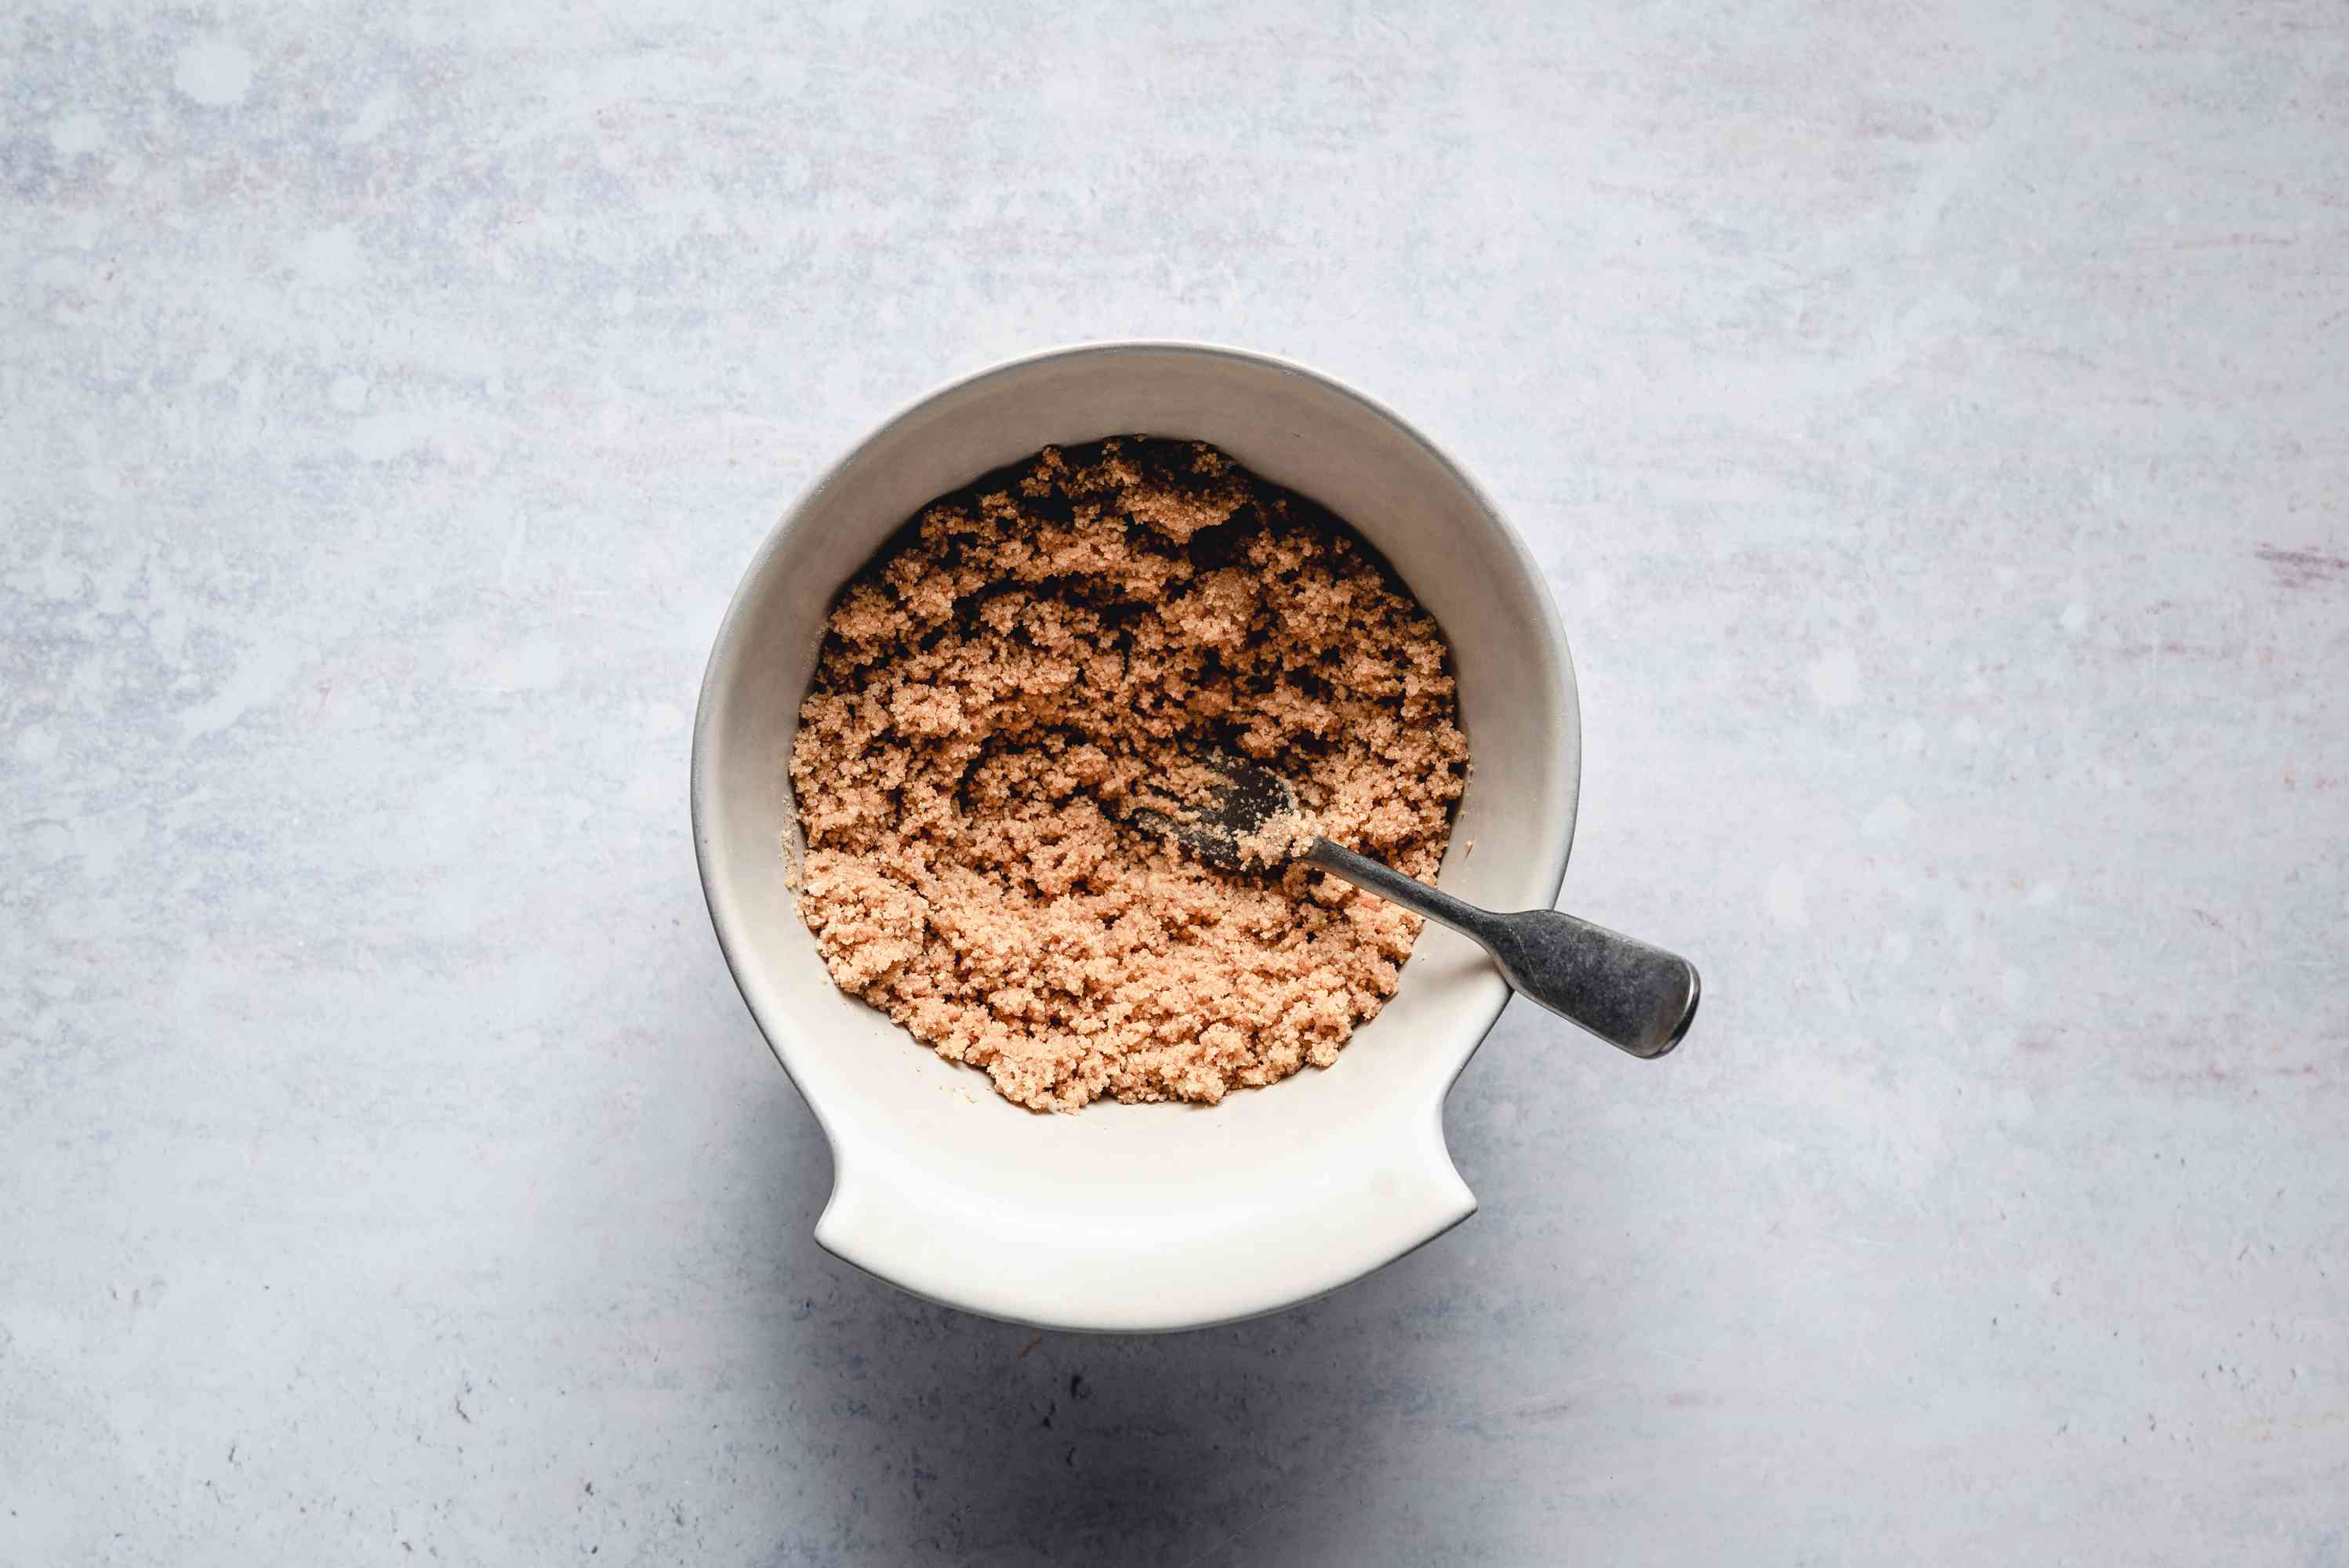 graham cracker crumbs and melted butter mashed together in a bowl